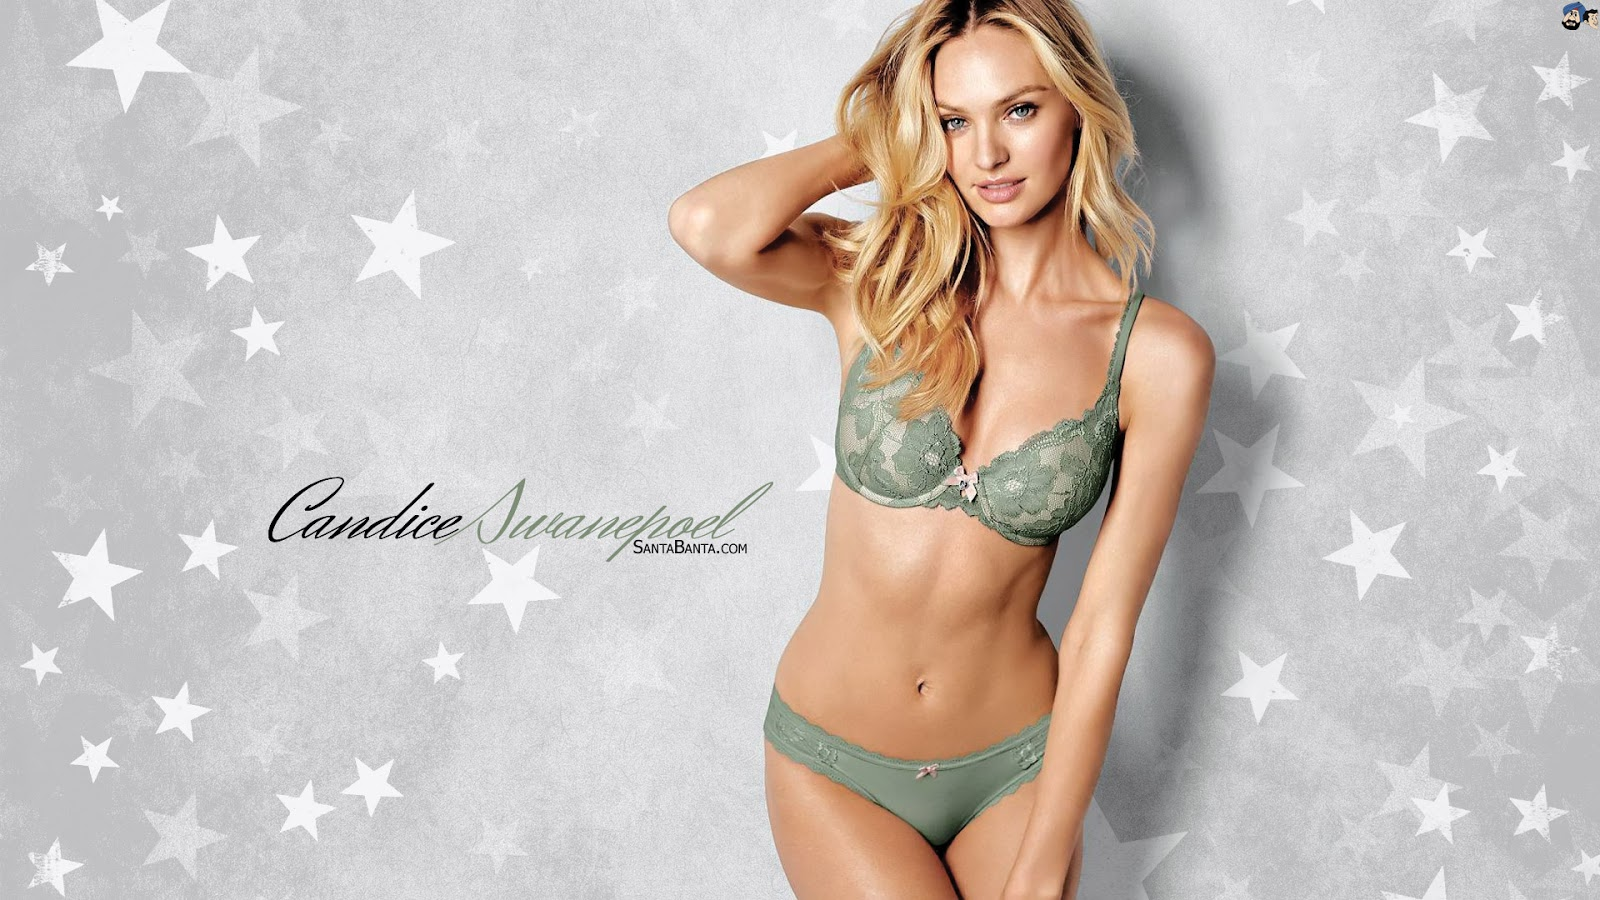 Candice Swanepoel Hd Wallpapers Most Beautiful Places In